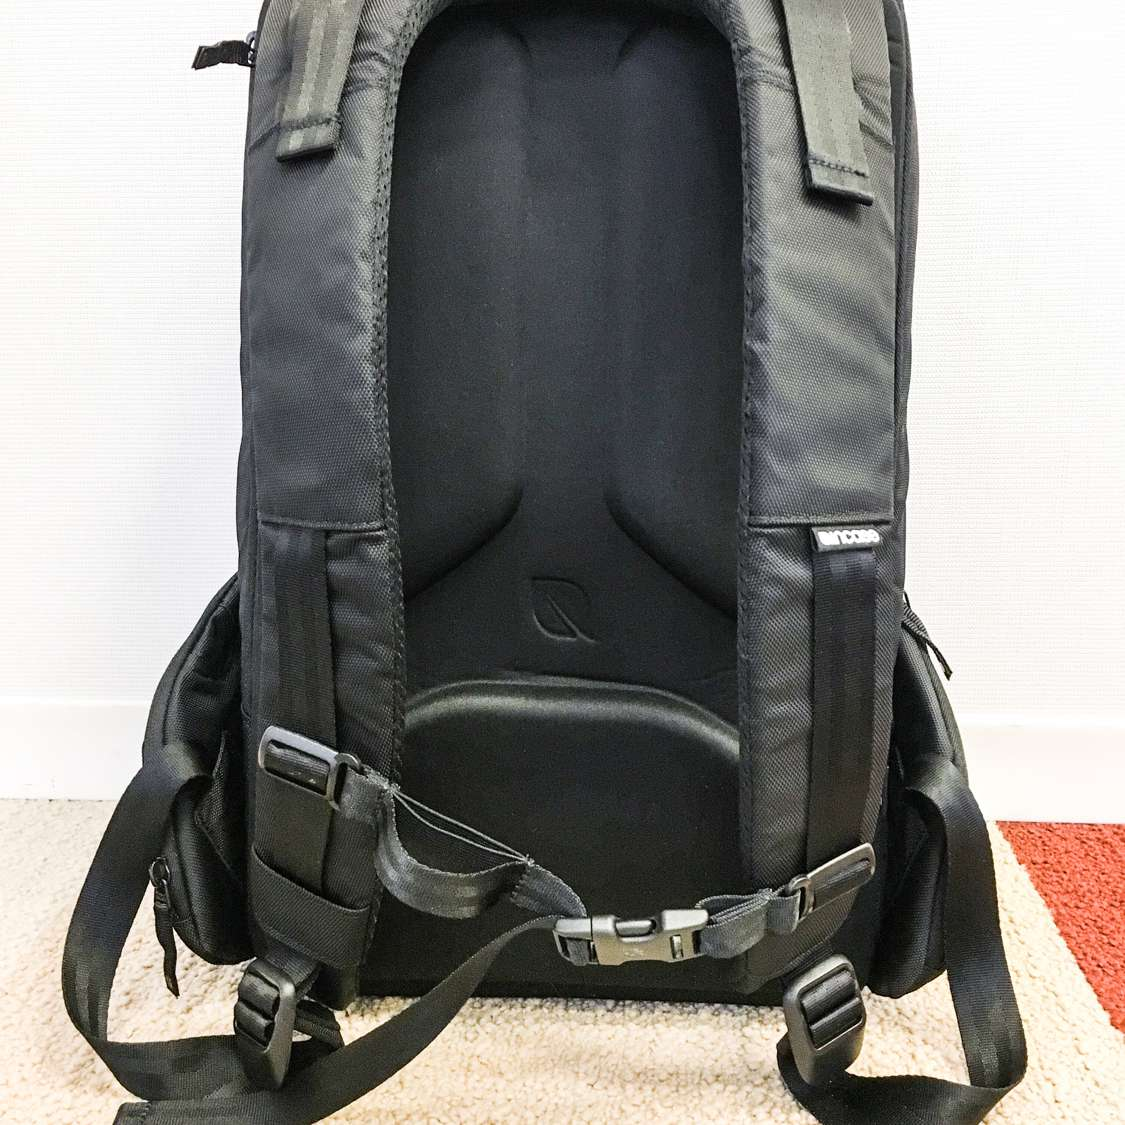 c48d7cbf4827 This is the laptop bag for you. One of our reviewers said the padding in  this bag was so good it felt ...